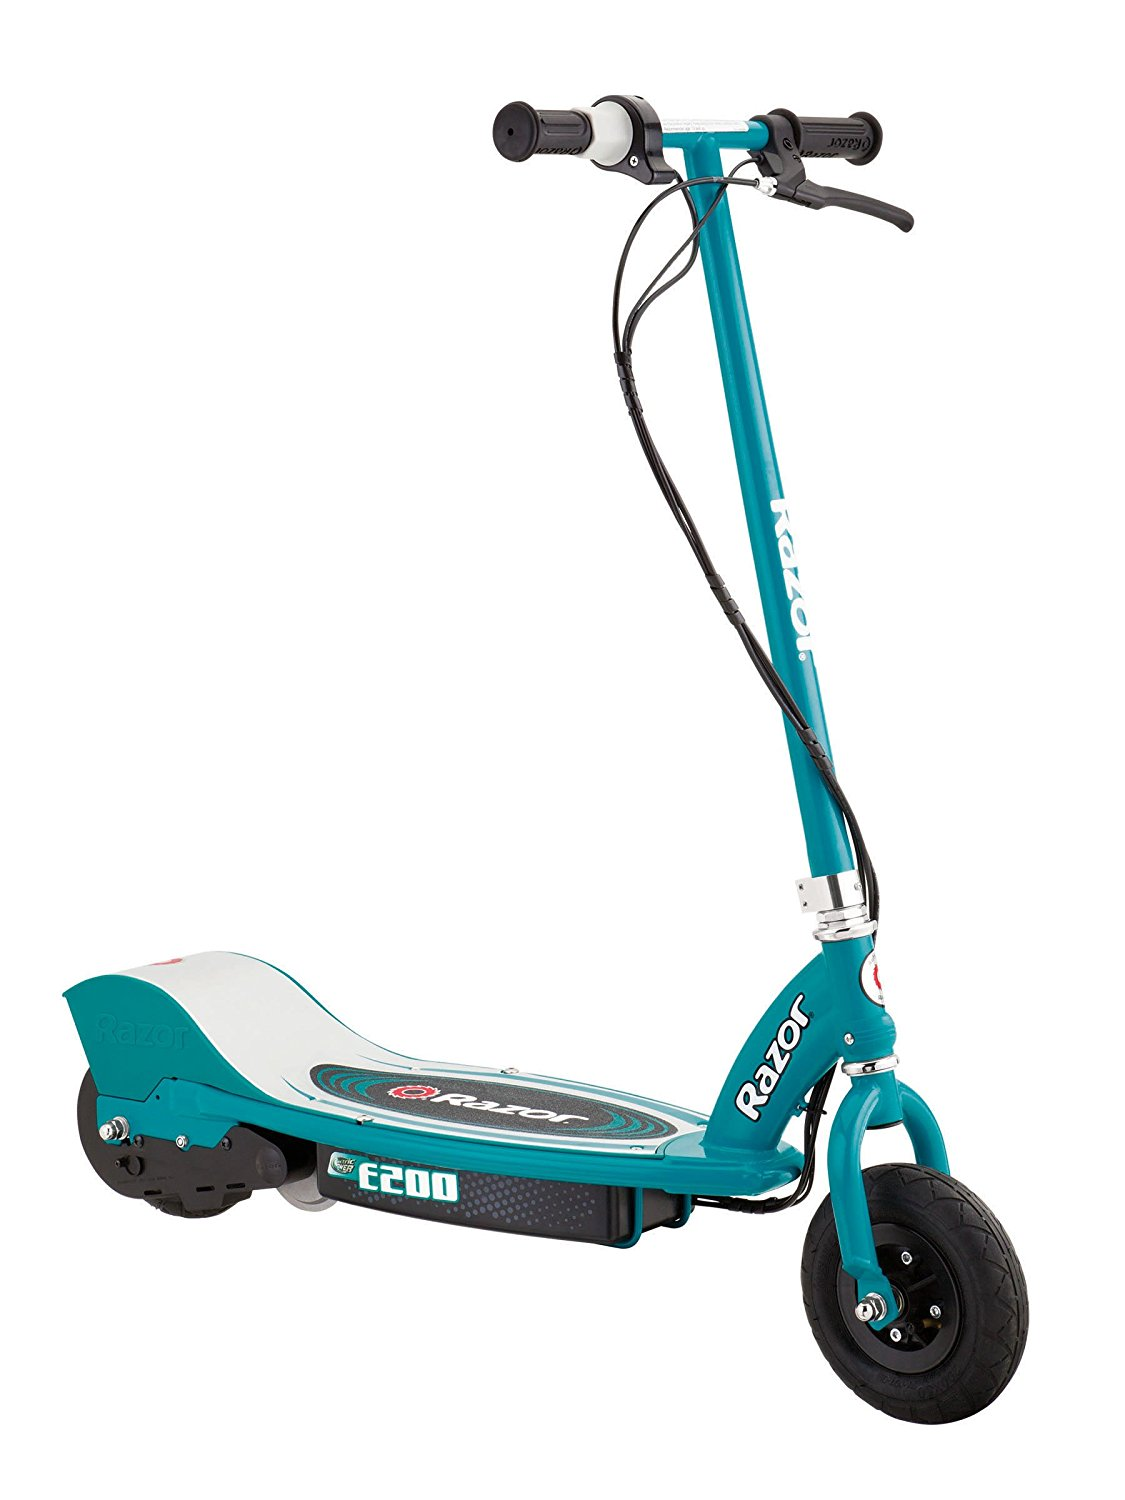 Review of Razor E200 Electric Scooter